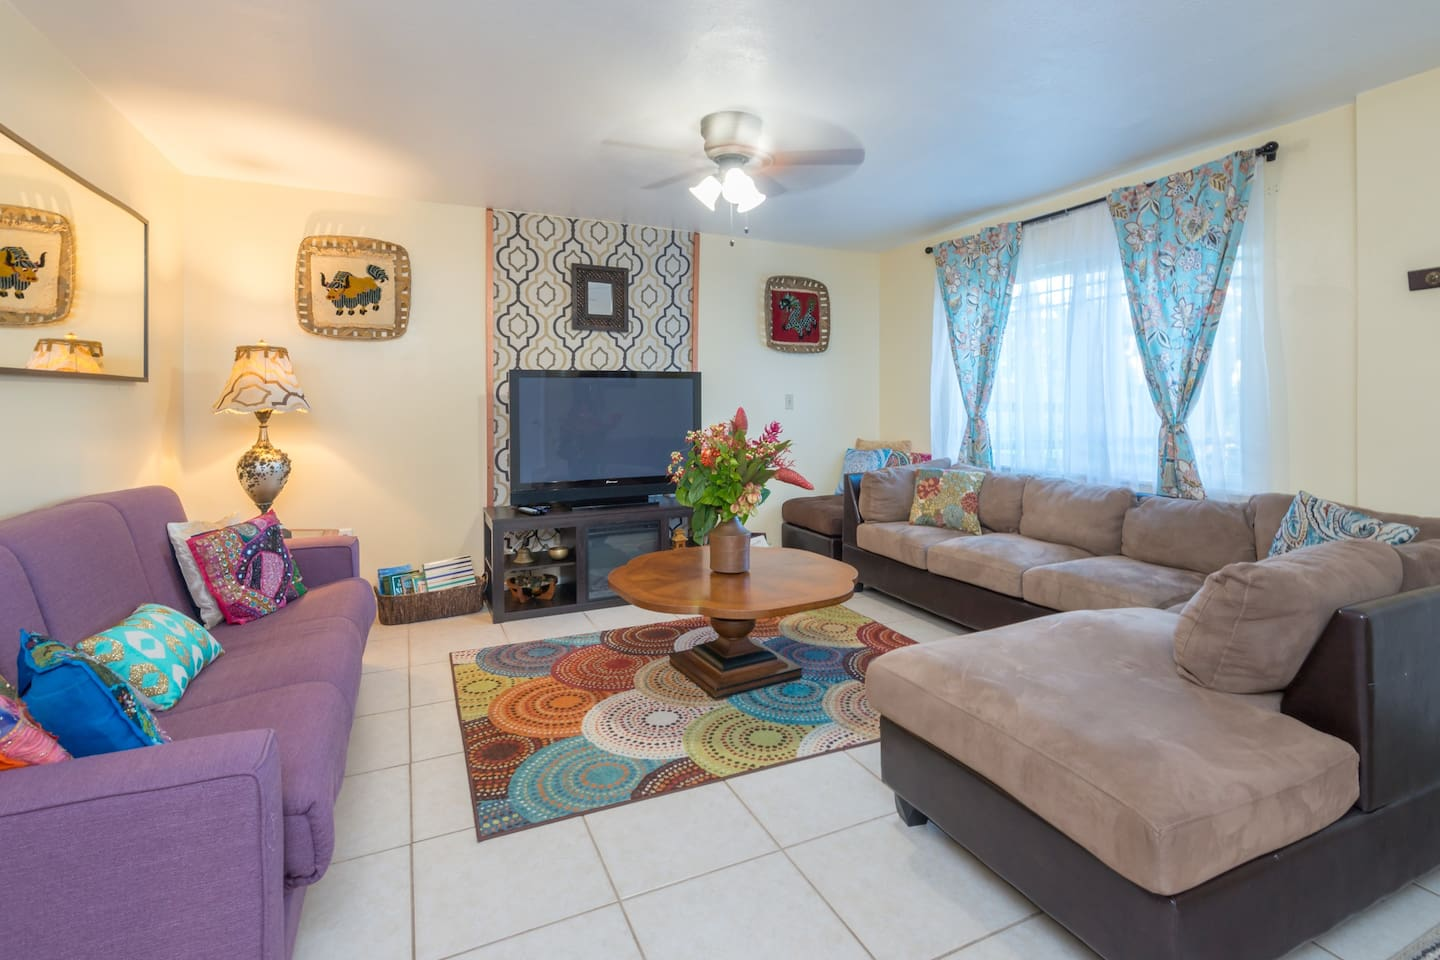 The cozy living room welcomes you in.  This is a great place to unwind after a day at Orlando's theme parks.    There is an electric fireplace under the television to warm you up on those few days a year that Florida gets chilly.